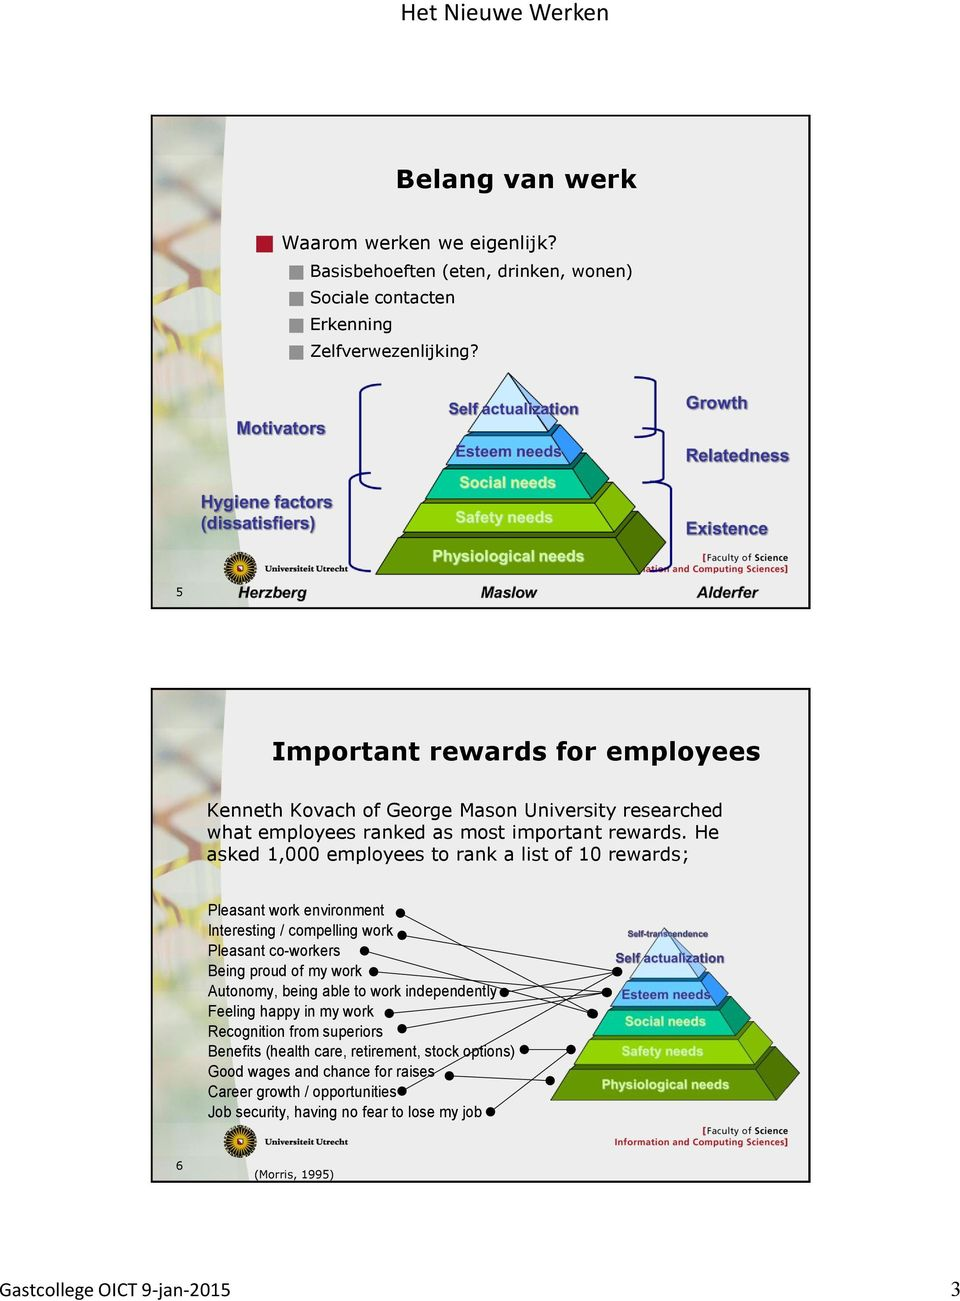 He asked 1,000 employees to rank a list of 10 rewards; ne gs e organization es onal problems.